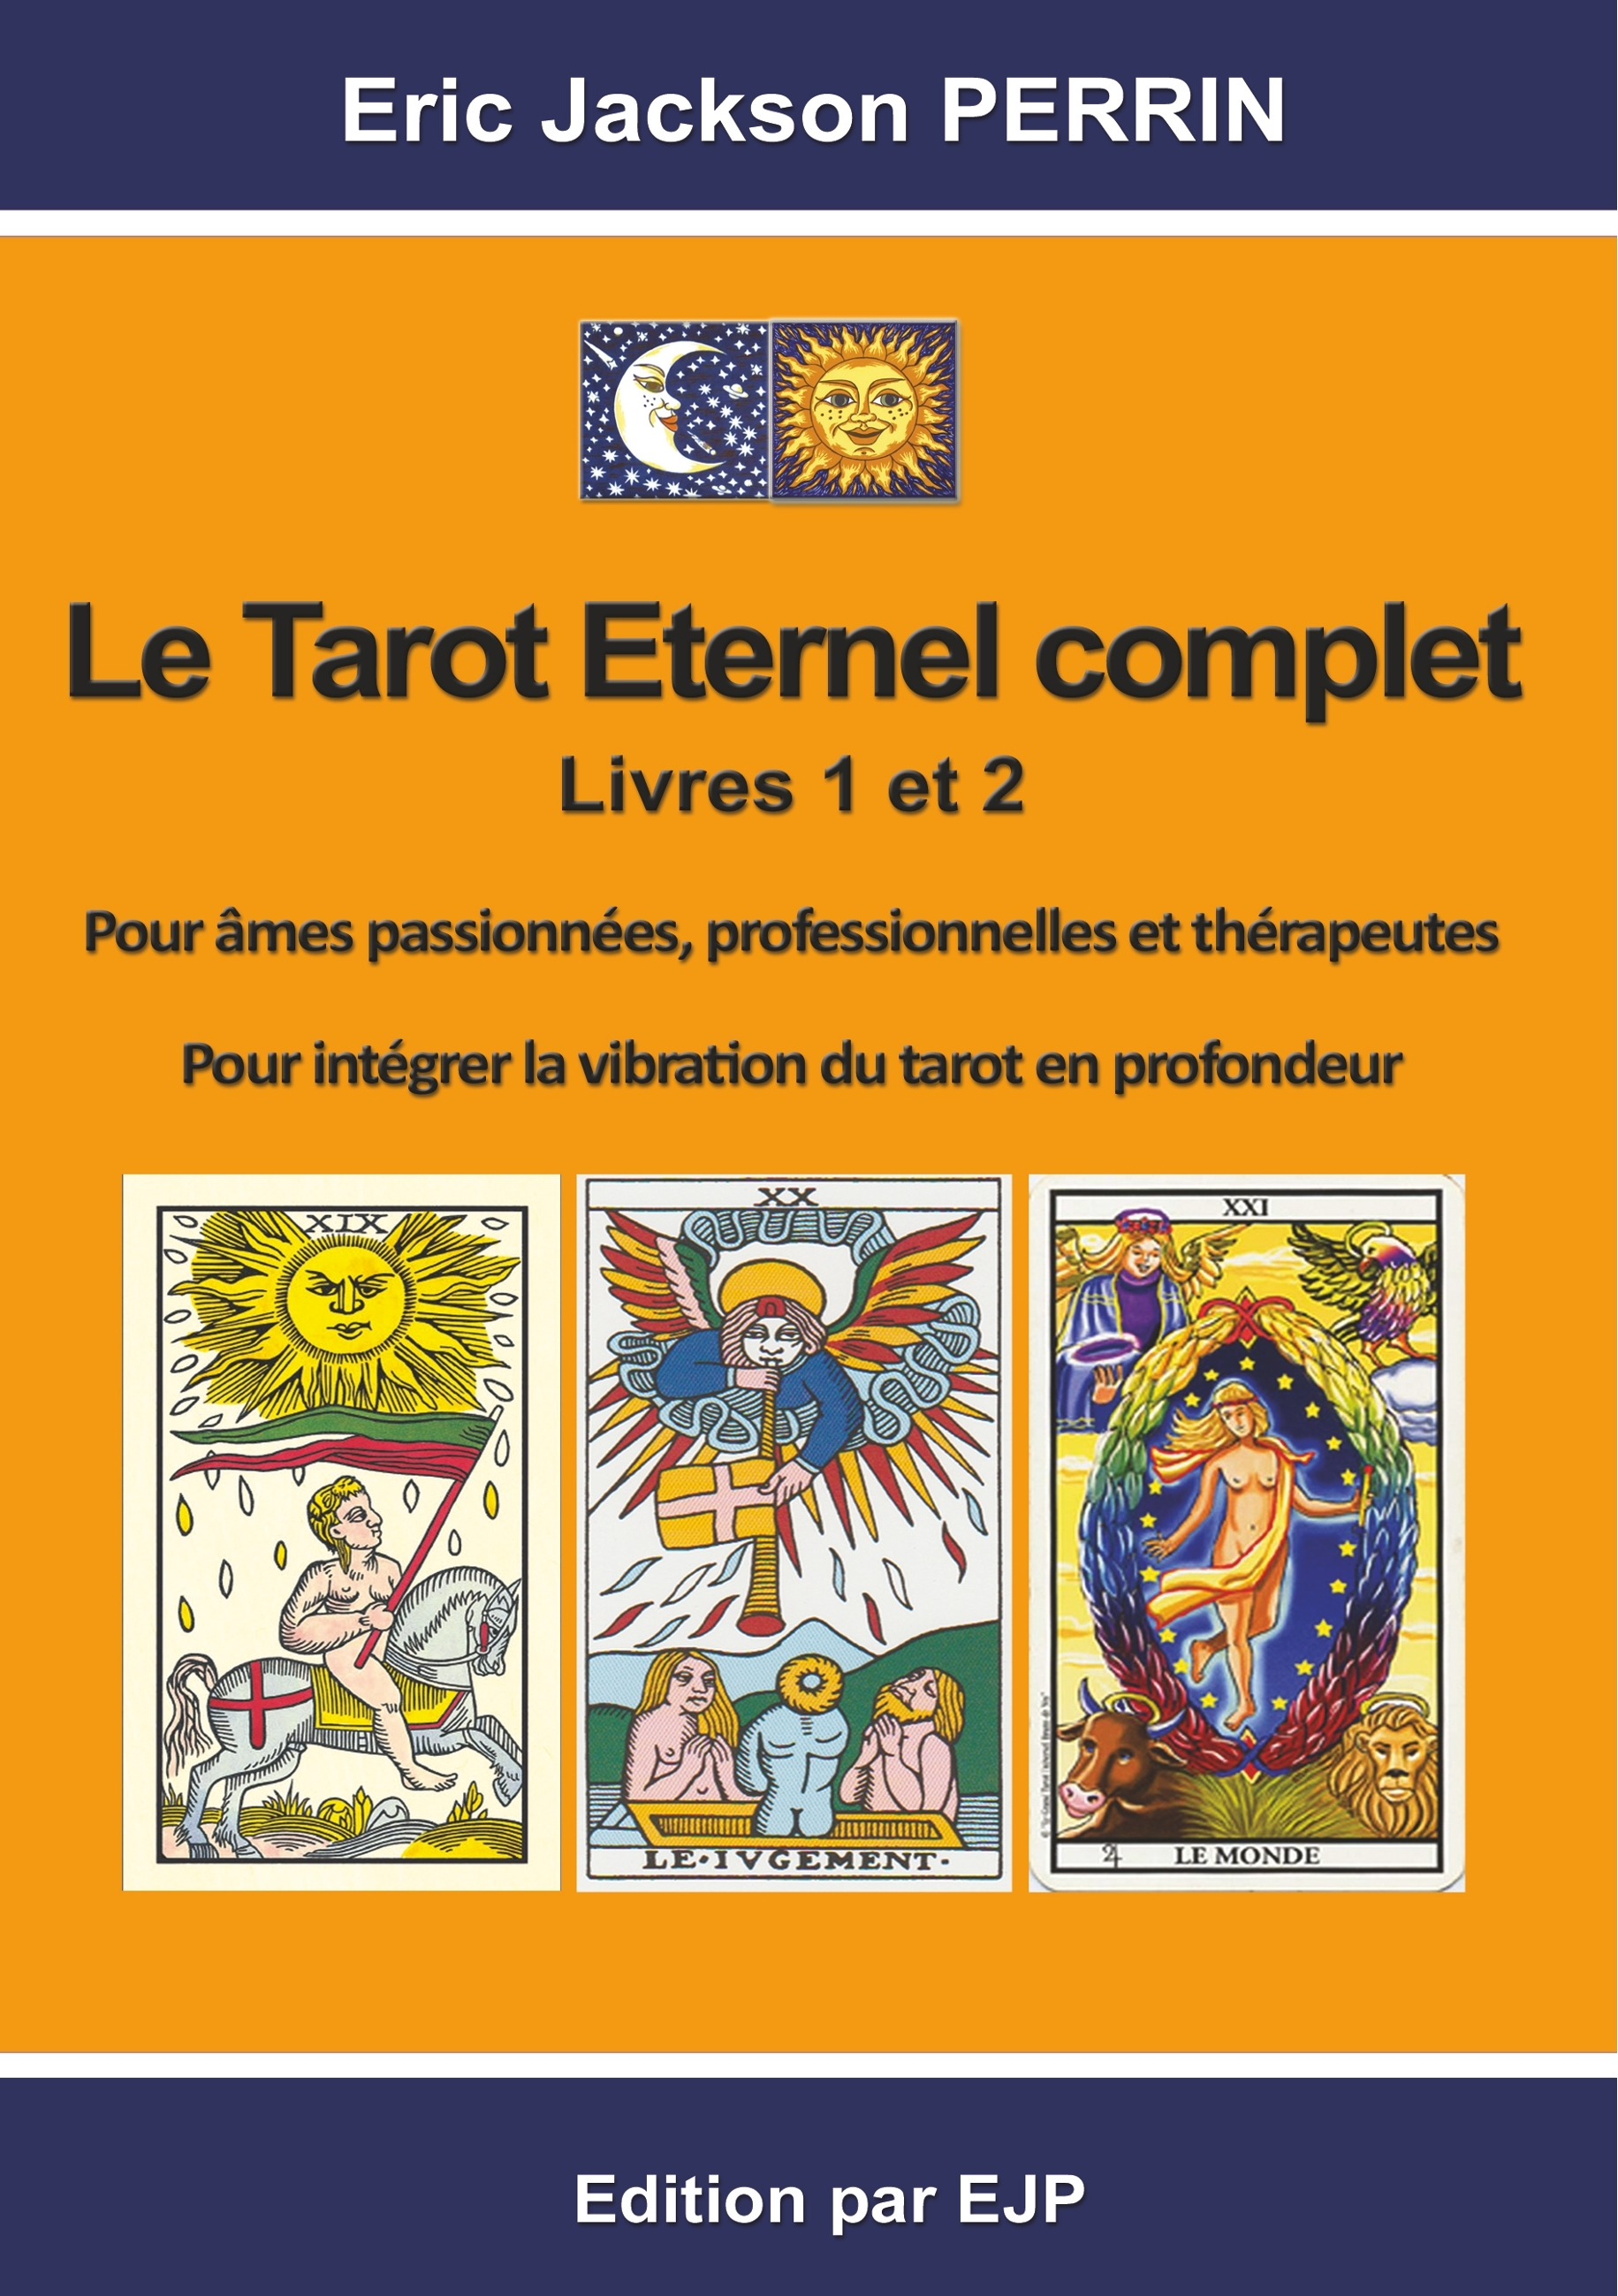 LE TAROT ETERNEL COMPLET